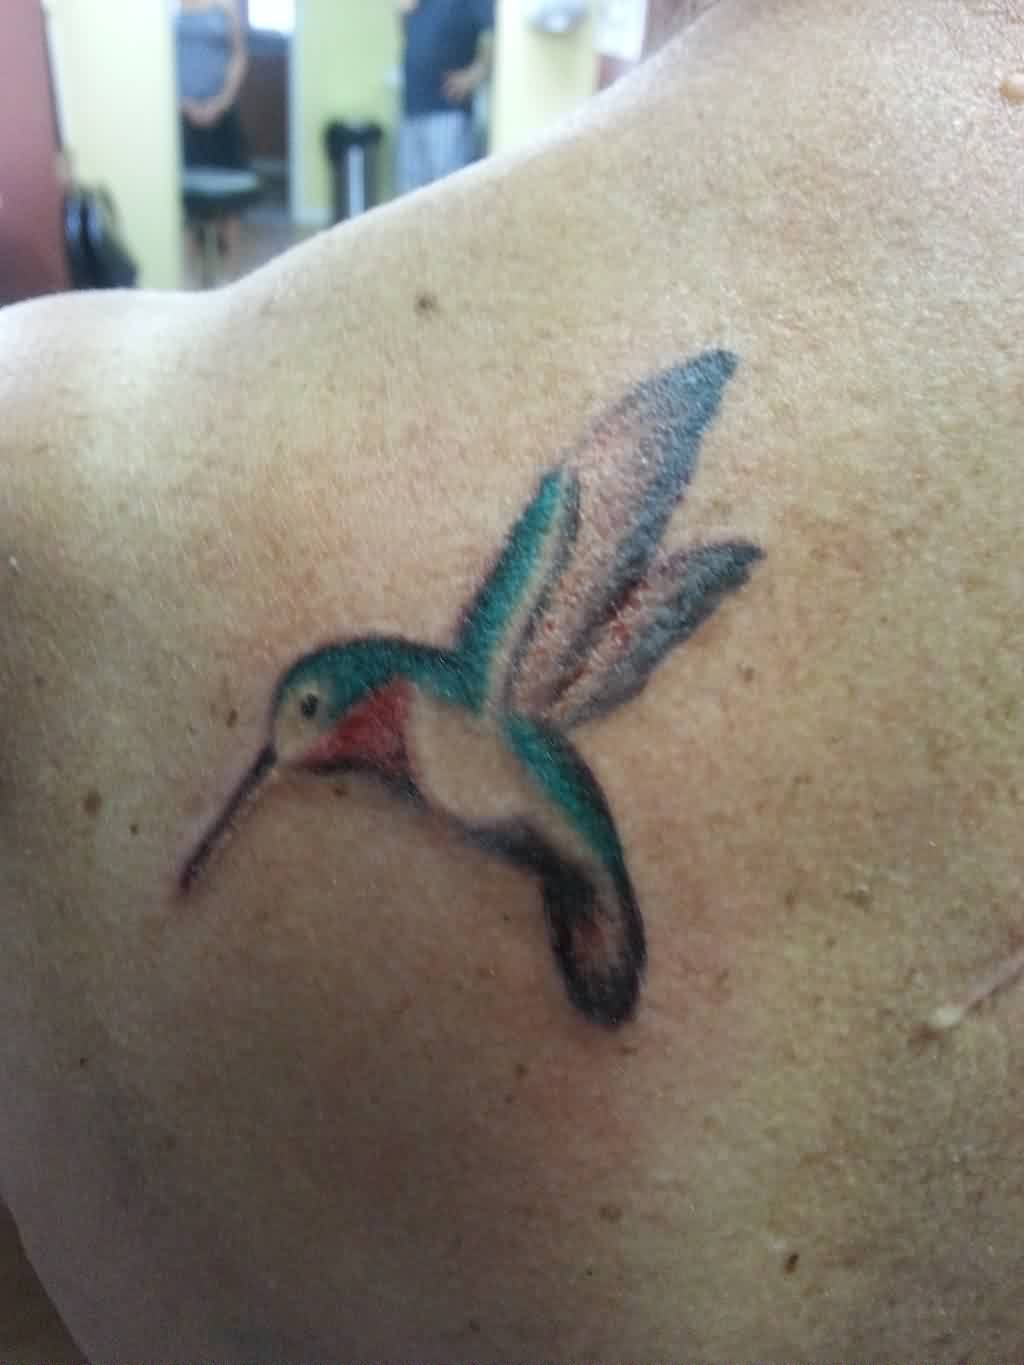 A Very Lovely Watercolor Hummingbird Tattoo